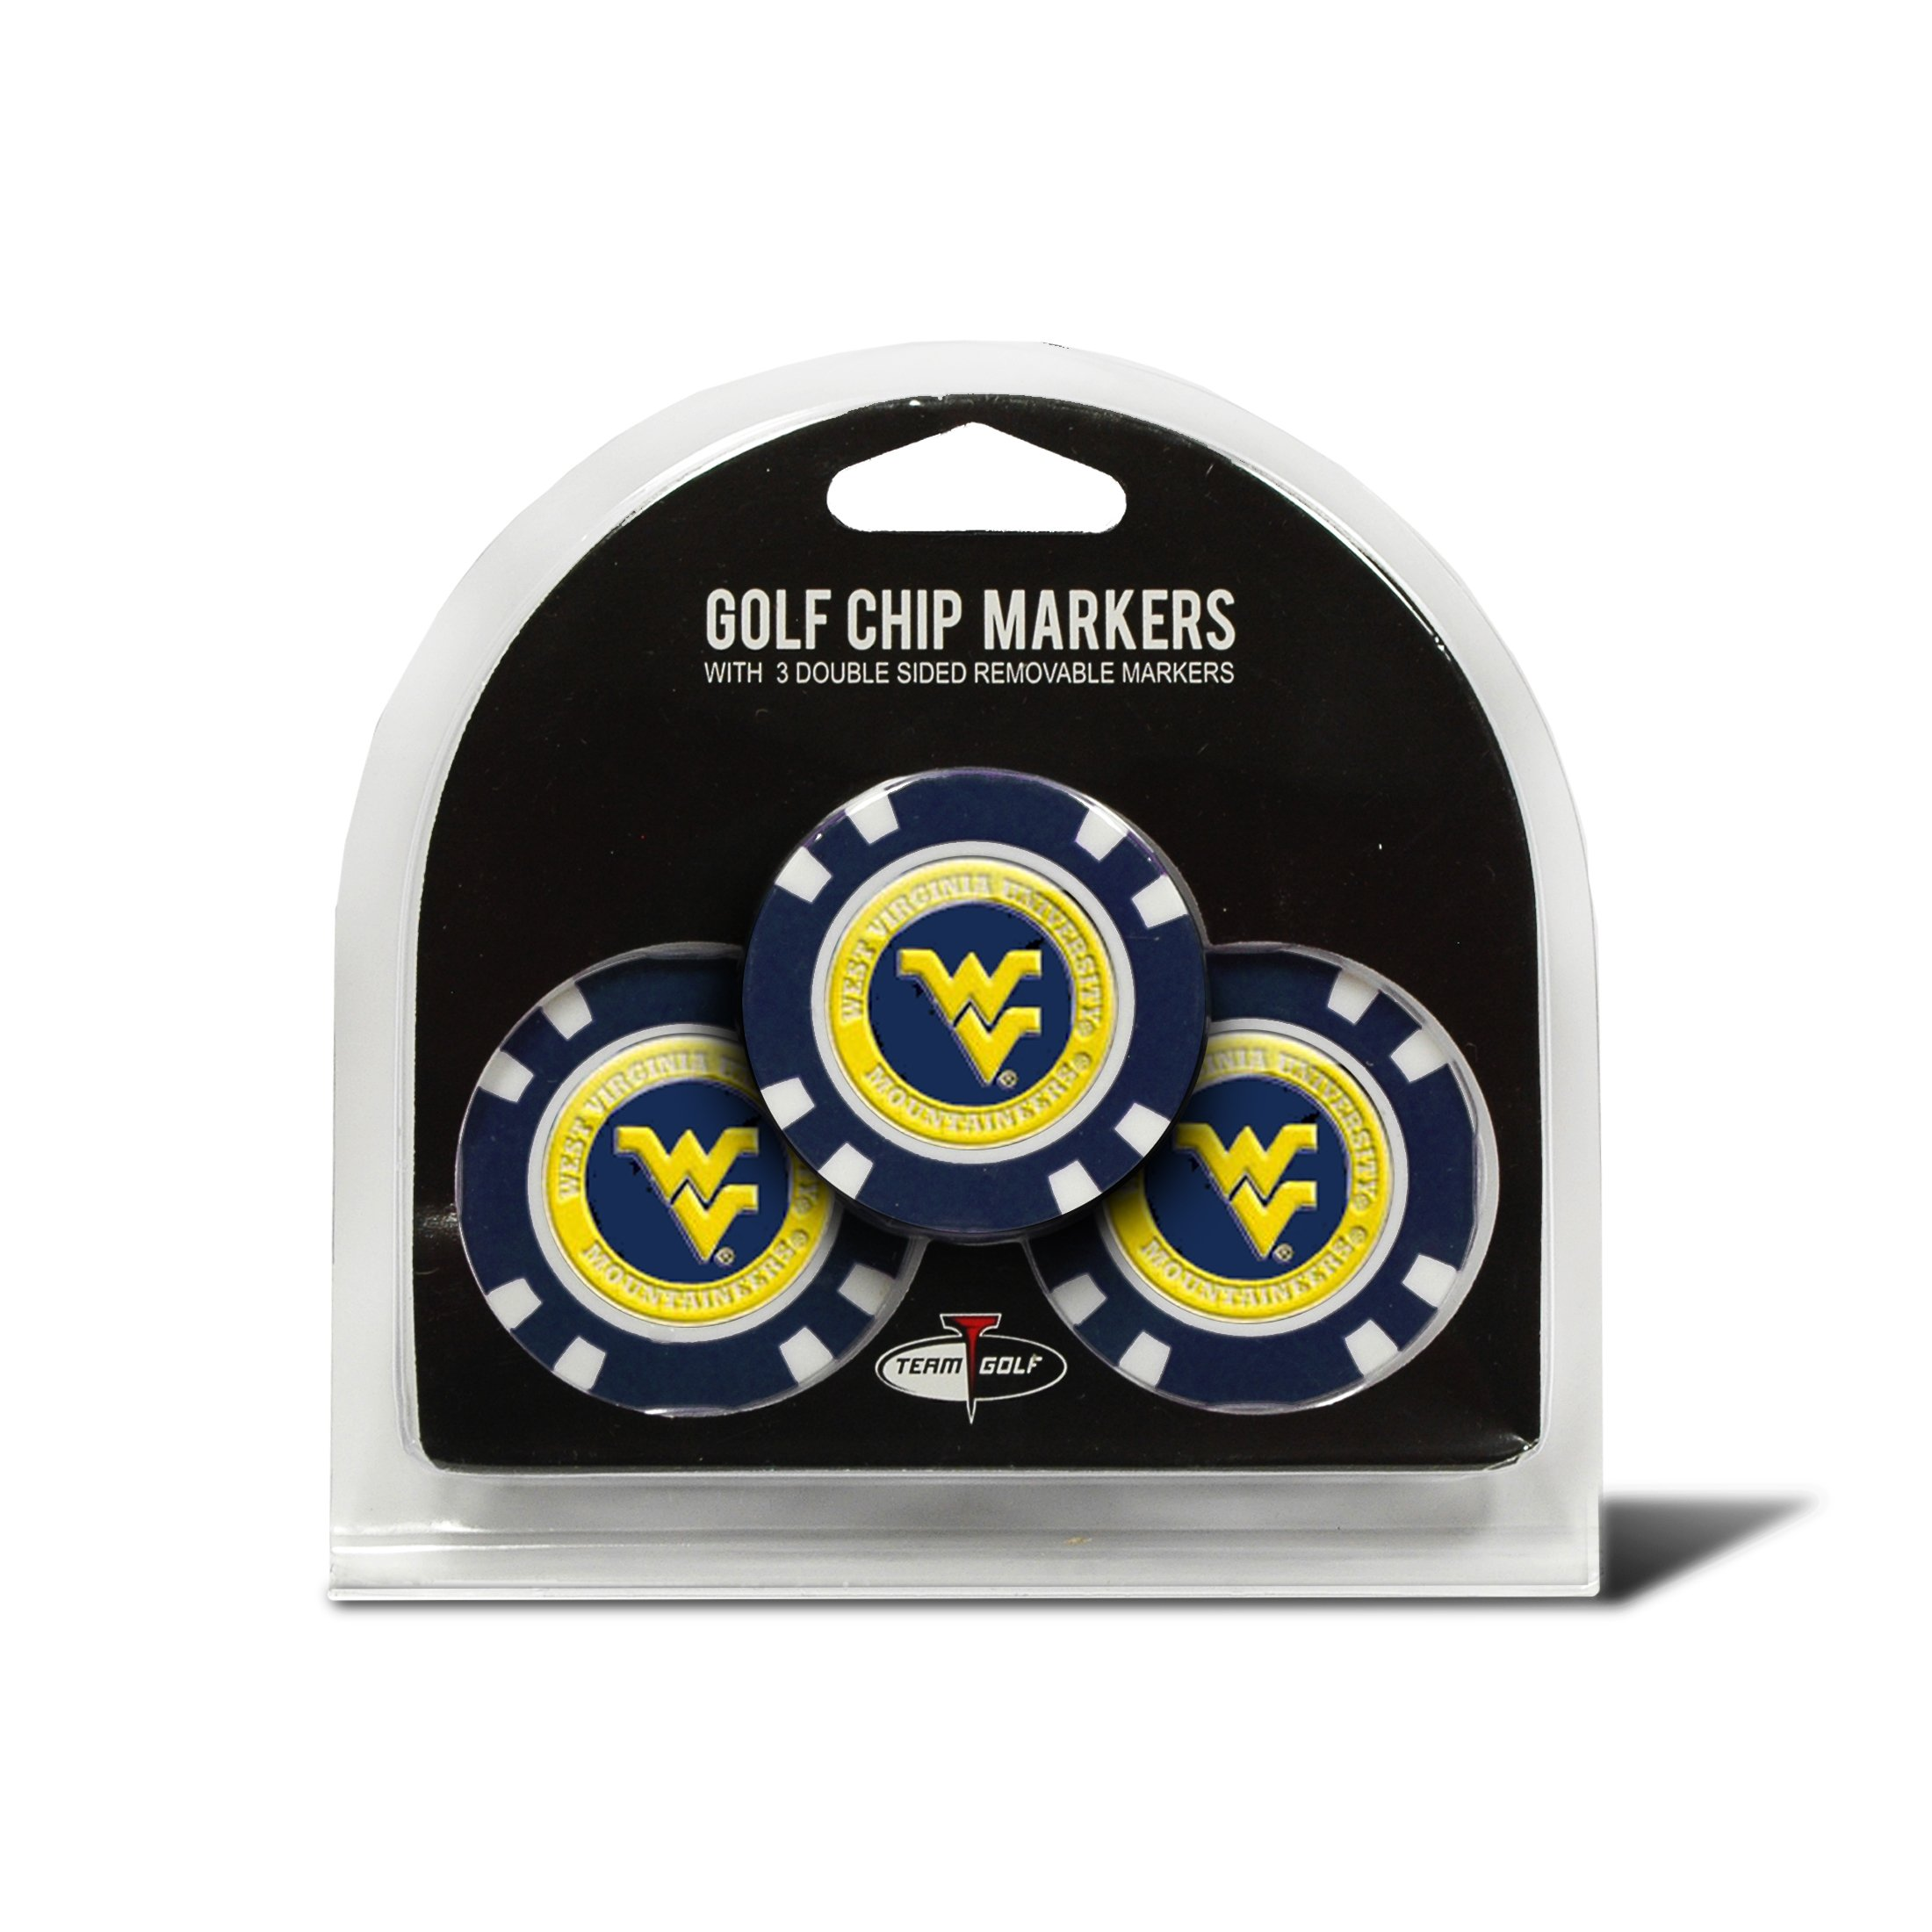 Team Golf NCAA West Virginia Mountaineers Golf Chip Ball Markers (3 Count), Poker Chip Size with Pop Out Smaller Double-Sided Enamel Markers by TEAM GOLF